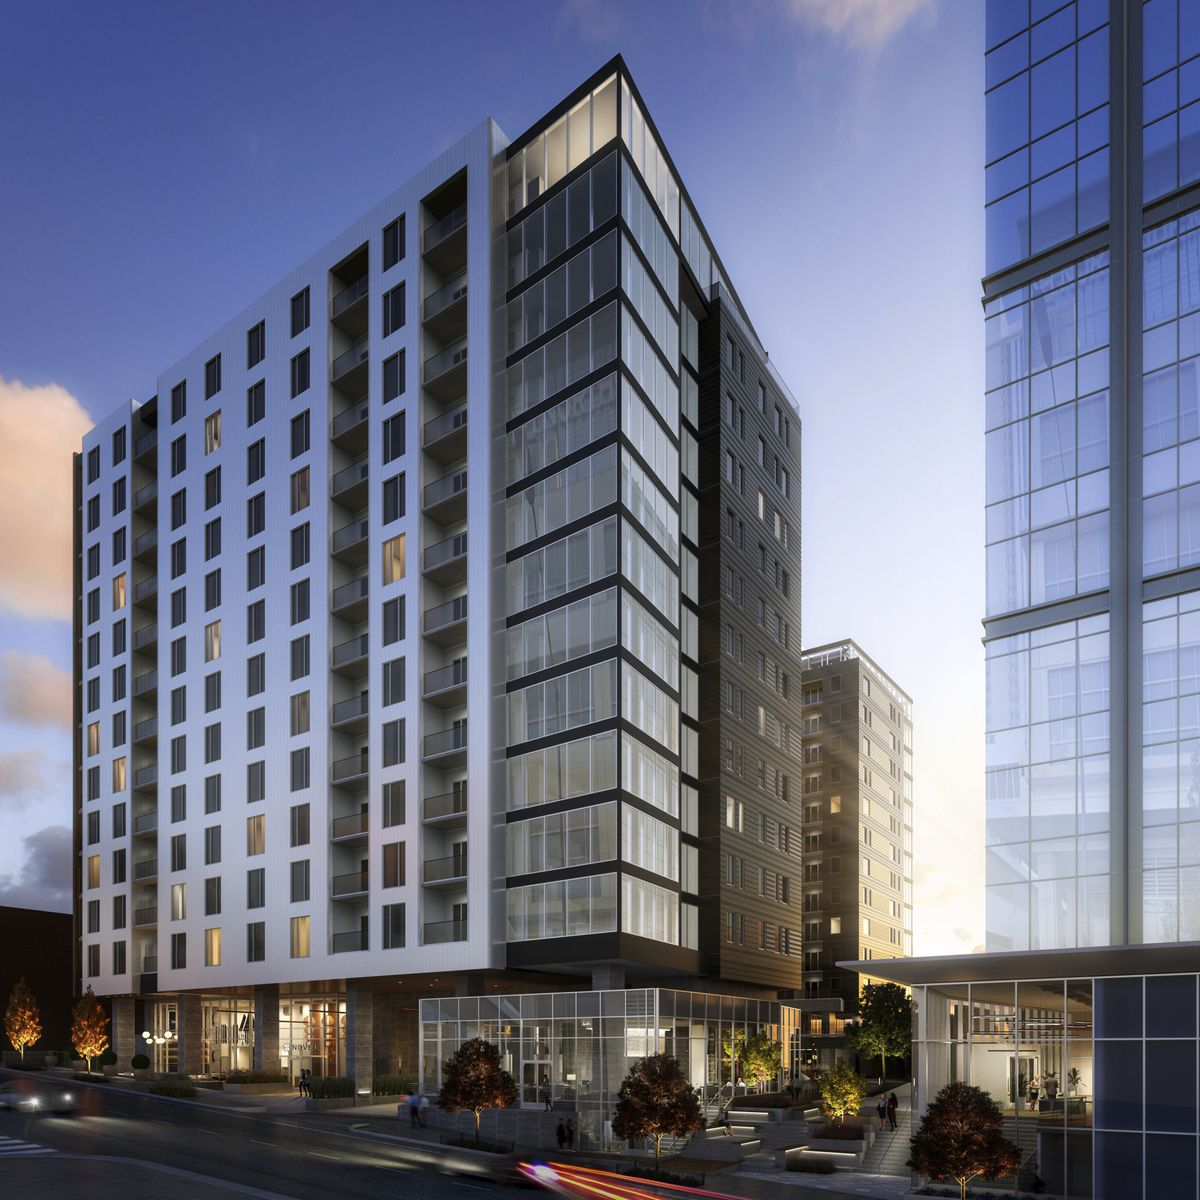 A condo tower with another glassy tower beside it, in renderings.